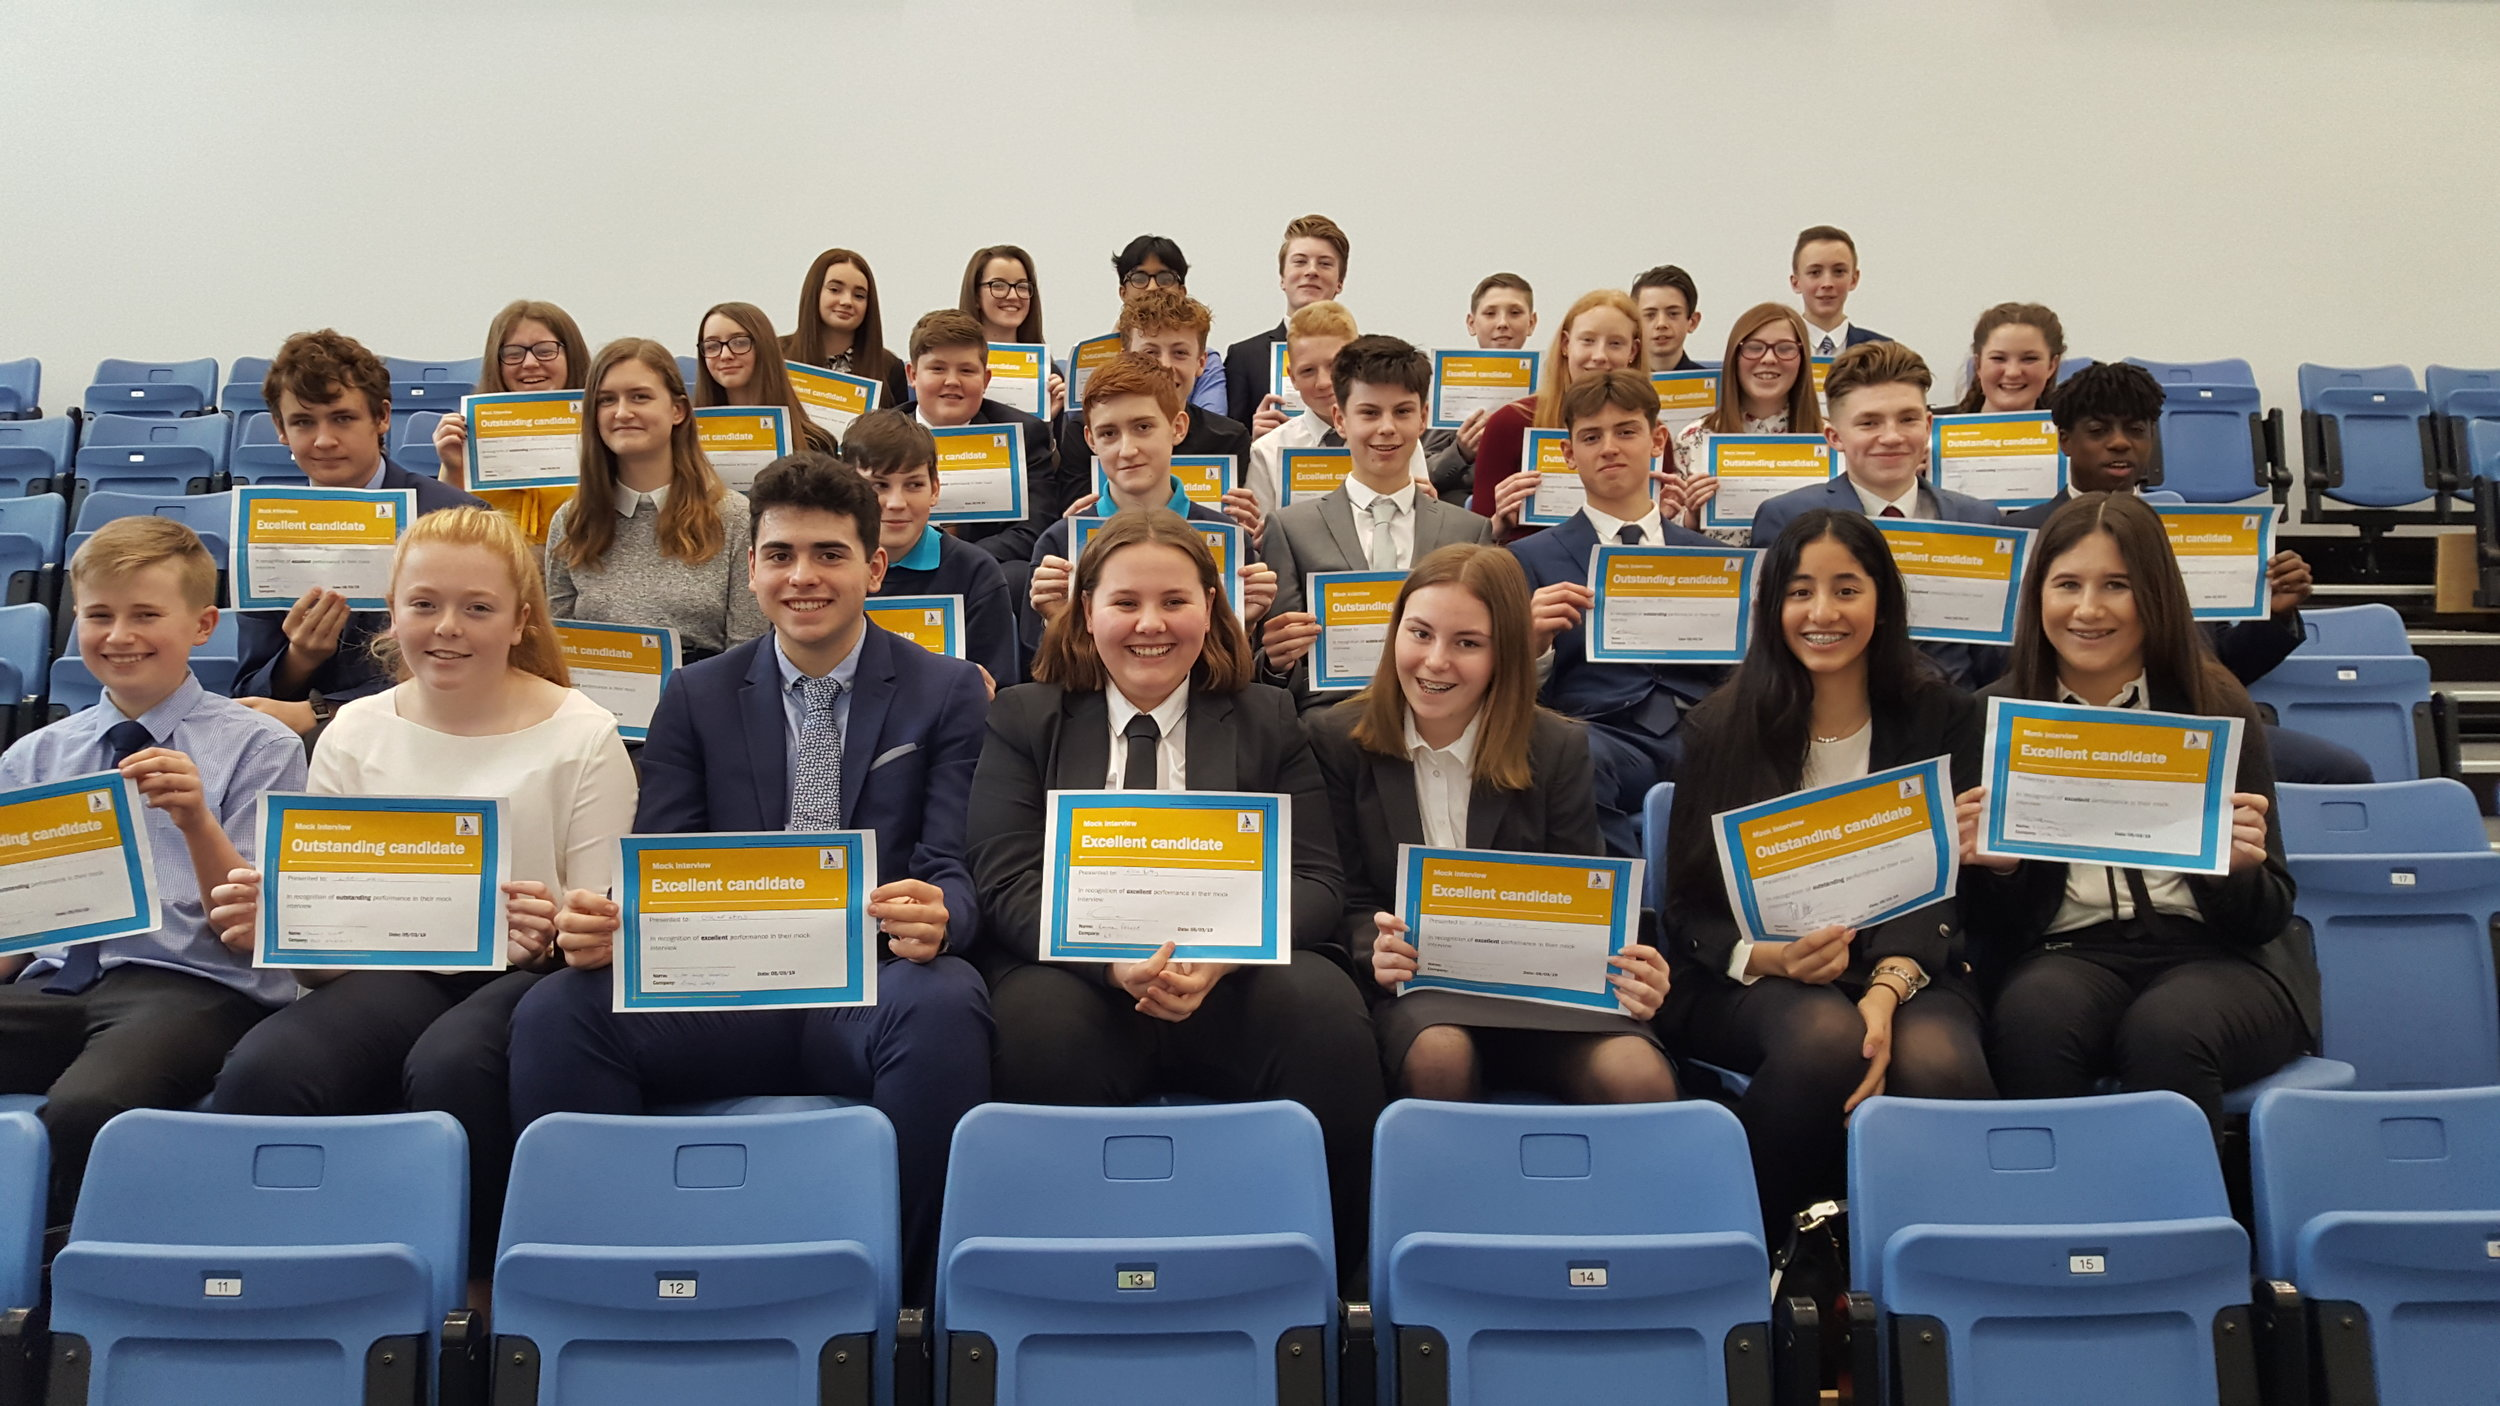 Congratulations to all the students who were awarded certificates on the day for being excellent or outstanding candidates. They were; Ethan H, Jack E, Briannie D, Libby M, Alan T, Josh D-C, Ronnie E, Max F, Vicky S, Oakley S, Oscar G, Montel , Fin A , Sophie M , Nell H, Florence R, Tom W, Aimee F, James C, Ellia B, Alfie W, Oscar W, Megan R, Holly M, Tamzin H, Rory D, Ryan G, Liv R, Noor A-S, Jamie B.